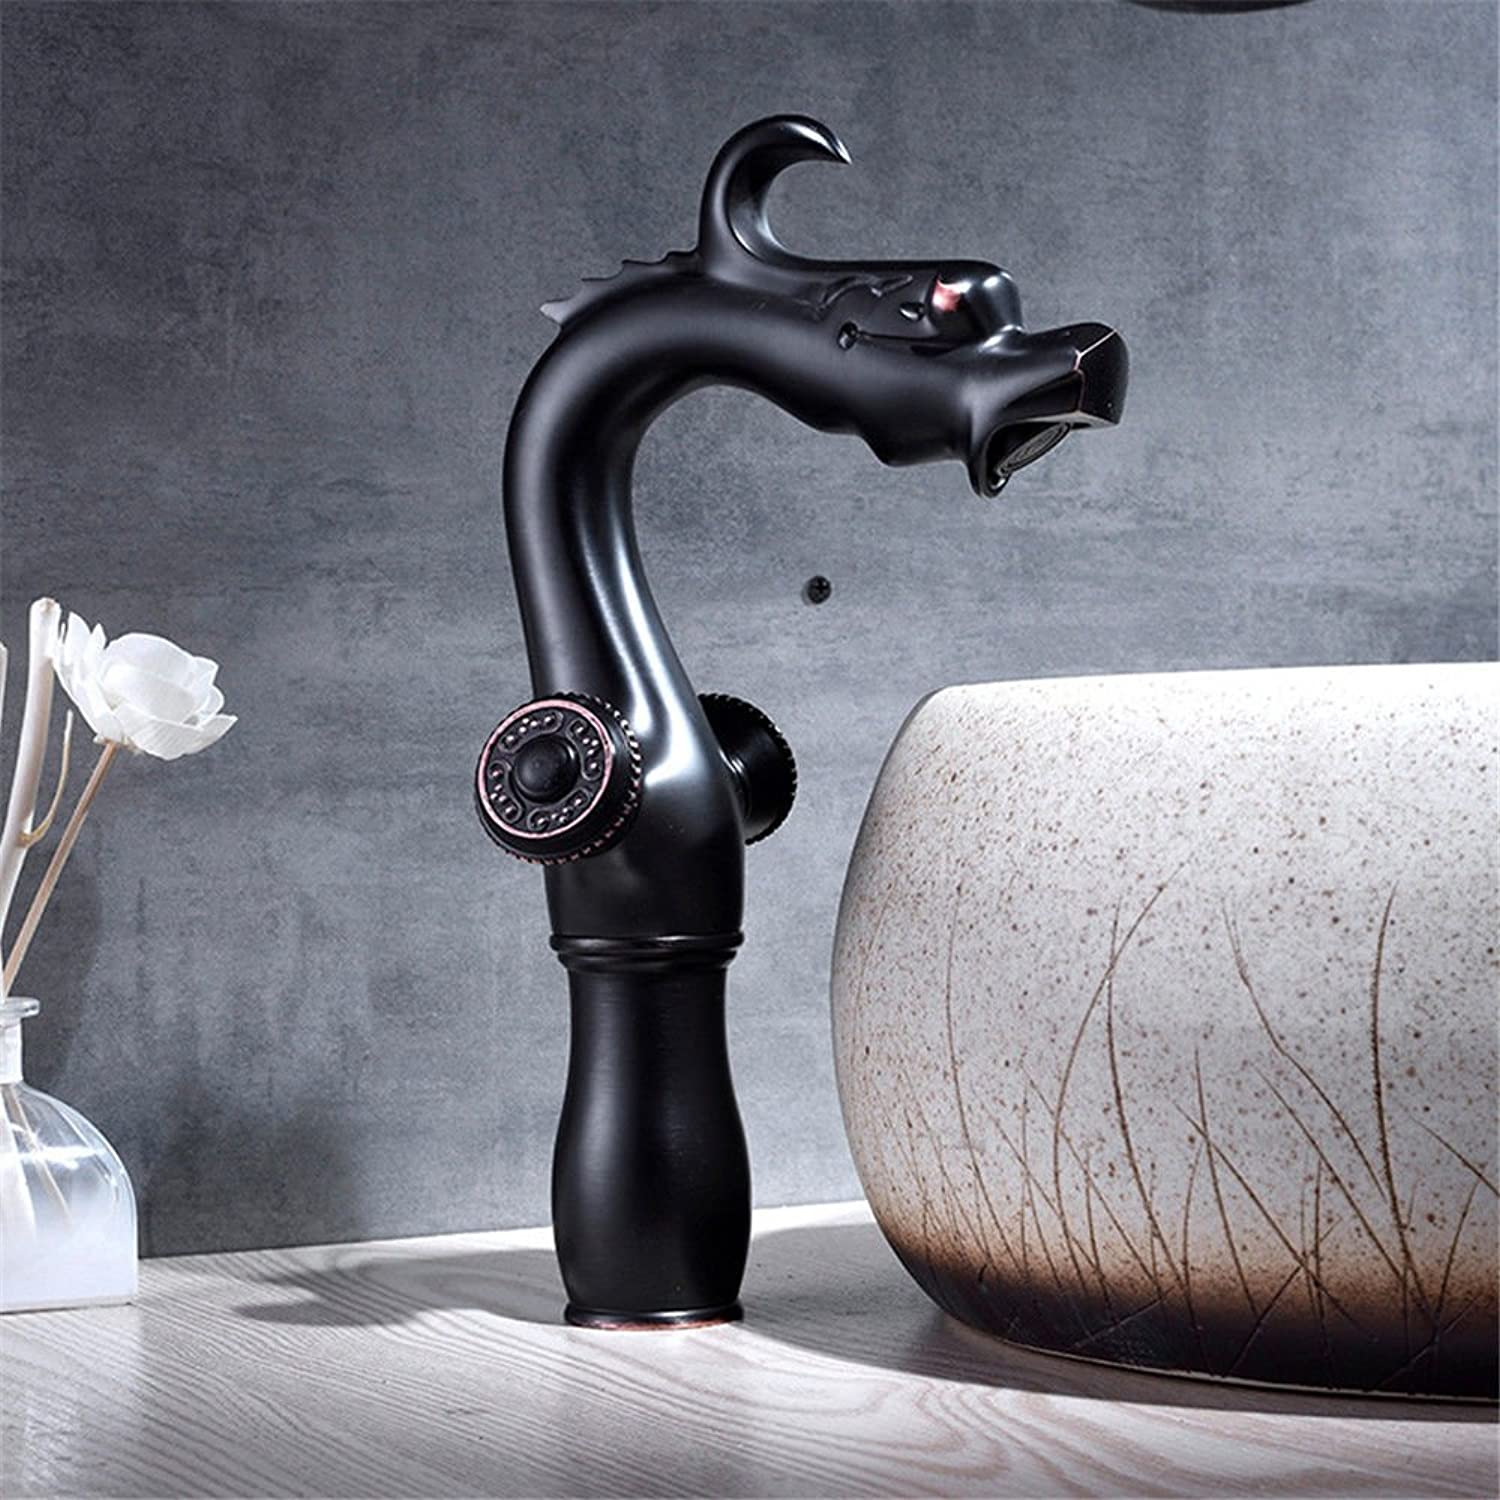 Hlluya Professional Sink Mixer Tap Kitchen Faucet Antique basin faucet bathroom Washbasin Faucet black faucet full copper hot and cold single hole Single Handle, B